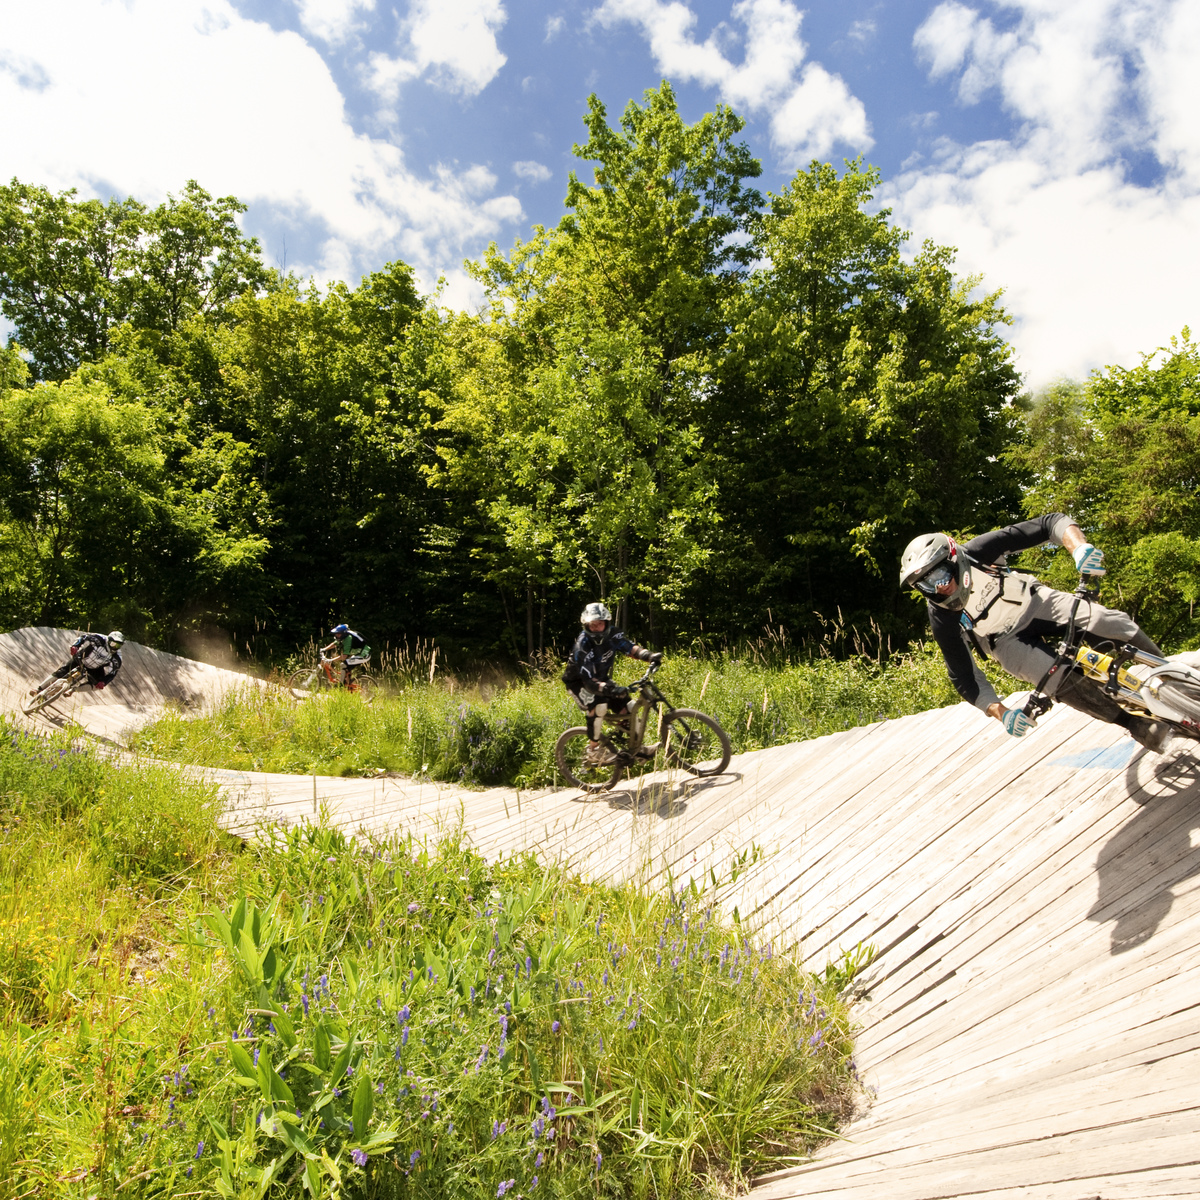 5. Get Your Adrenaline Pumping at the Mountain Bike Park